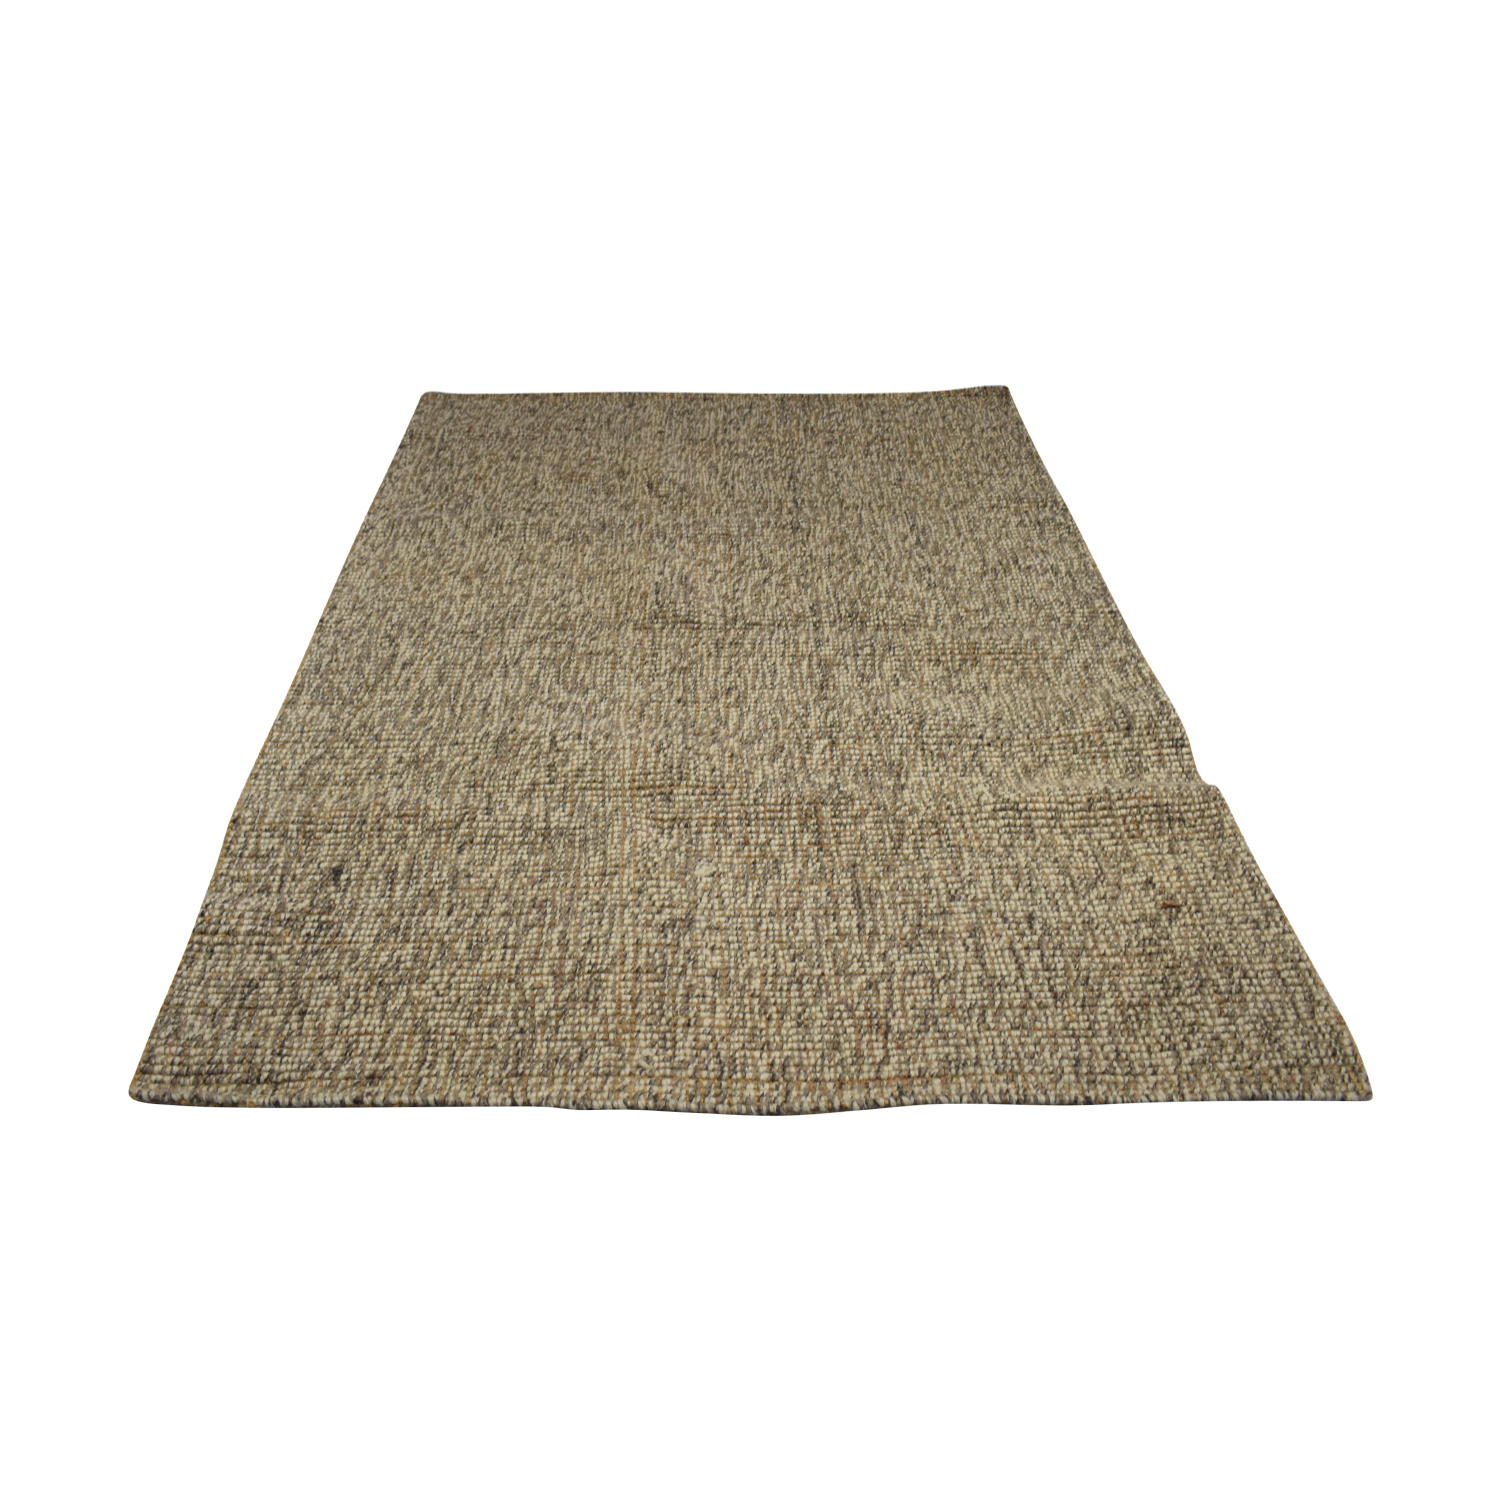 buy Crate & Barrel Grey Popcorn Rug Crate & Barrel Rugs